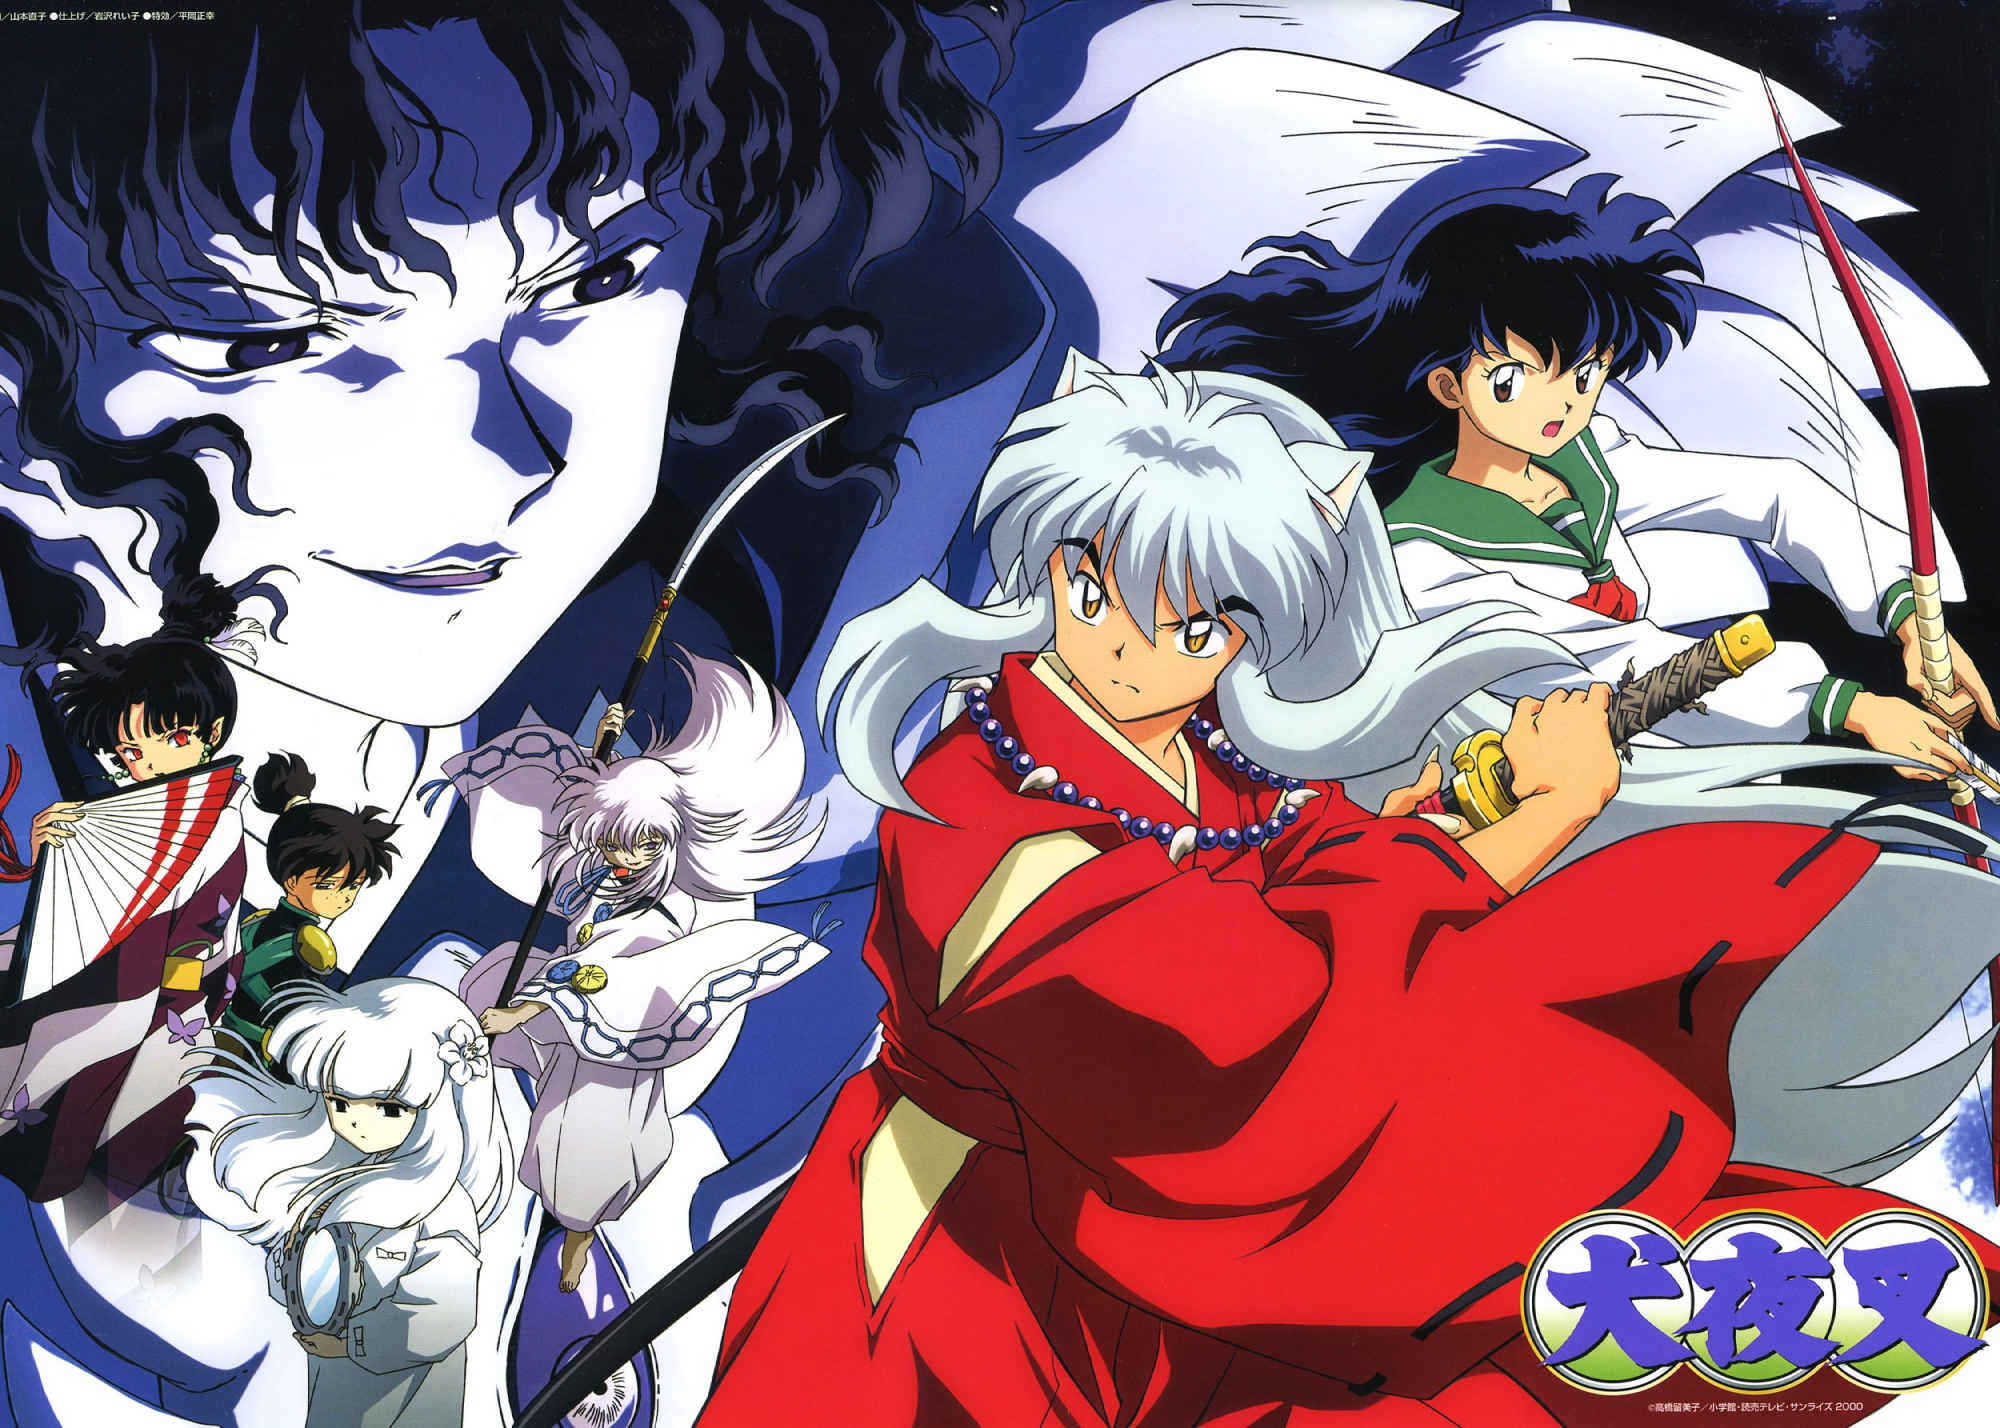 animal_ears armor bandage barefoot black_eyes blue_eyes bow brown_eyes butterfly fan feathers flowers group hakudoshi higurashi_kagome inuyasha inuyasha_(character) japanese_clothes kagura_(inuyasha) kanna_(inuyasha) katana kimono kohaku_(inuyasha) long_hair male mirror naraku necklace night ponytail purple_eyes red_eyes ribbons scan school_uniform short_hair spear sword tie watermark weapon white_hair yellow_eyes